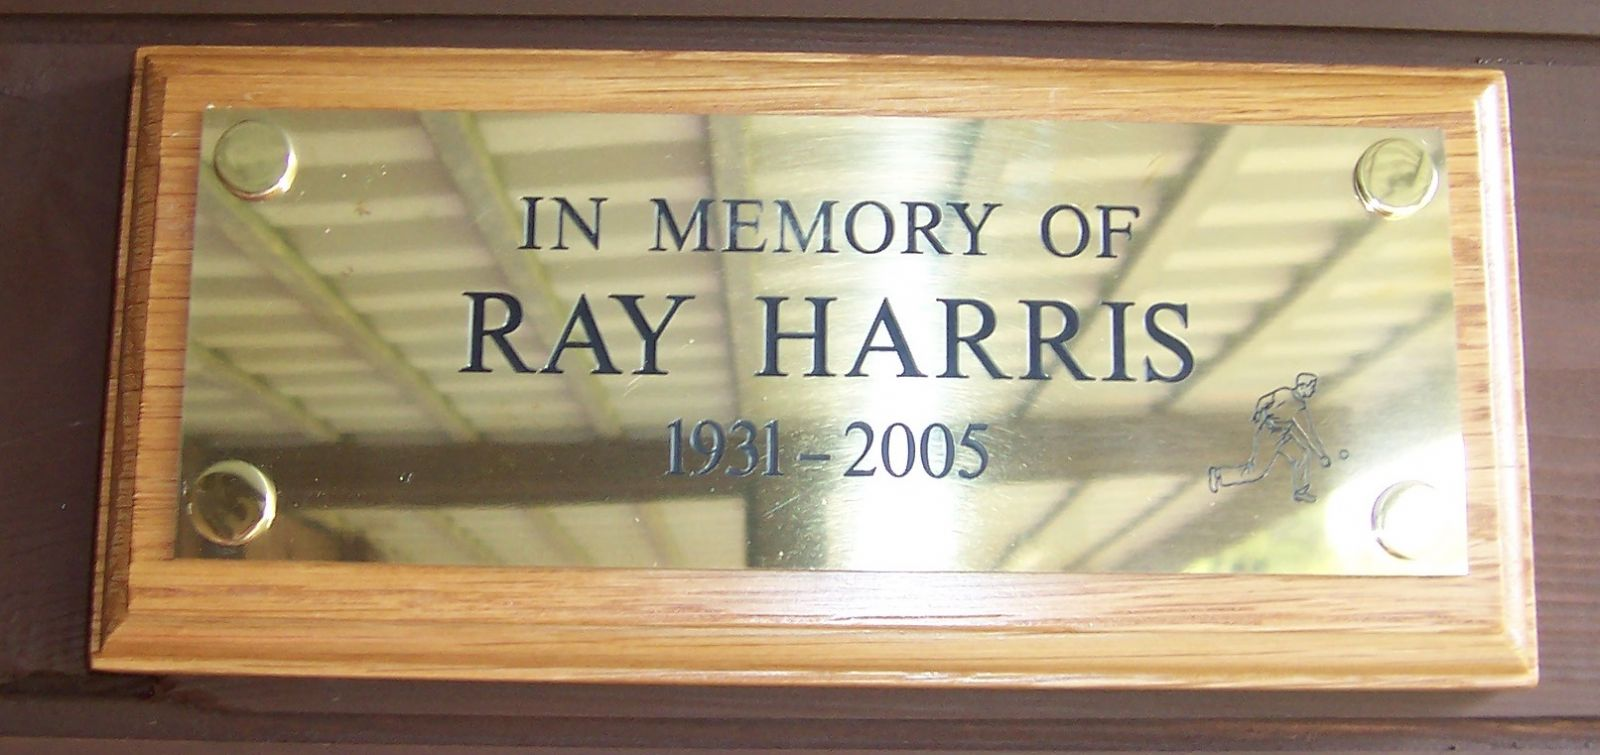 Engraved Memorial And Commemorative Plaques From Premier